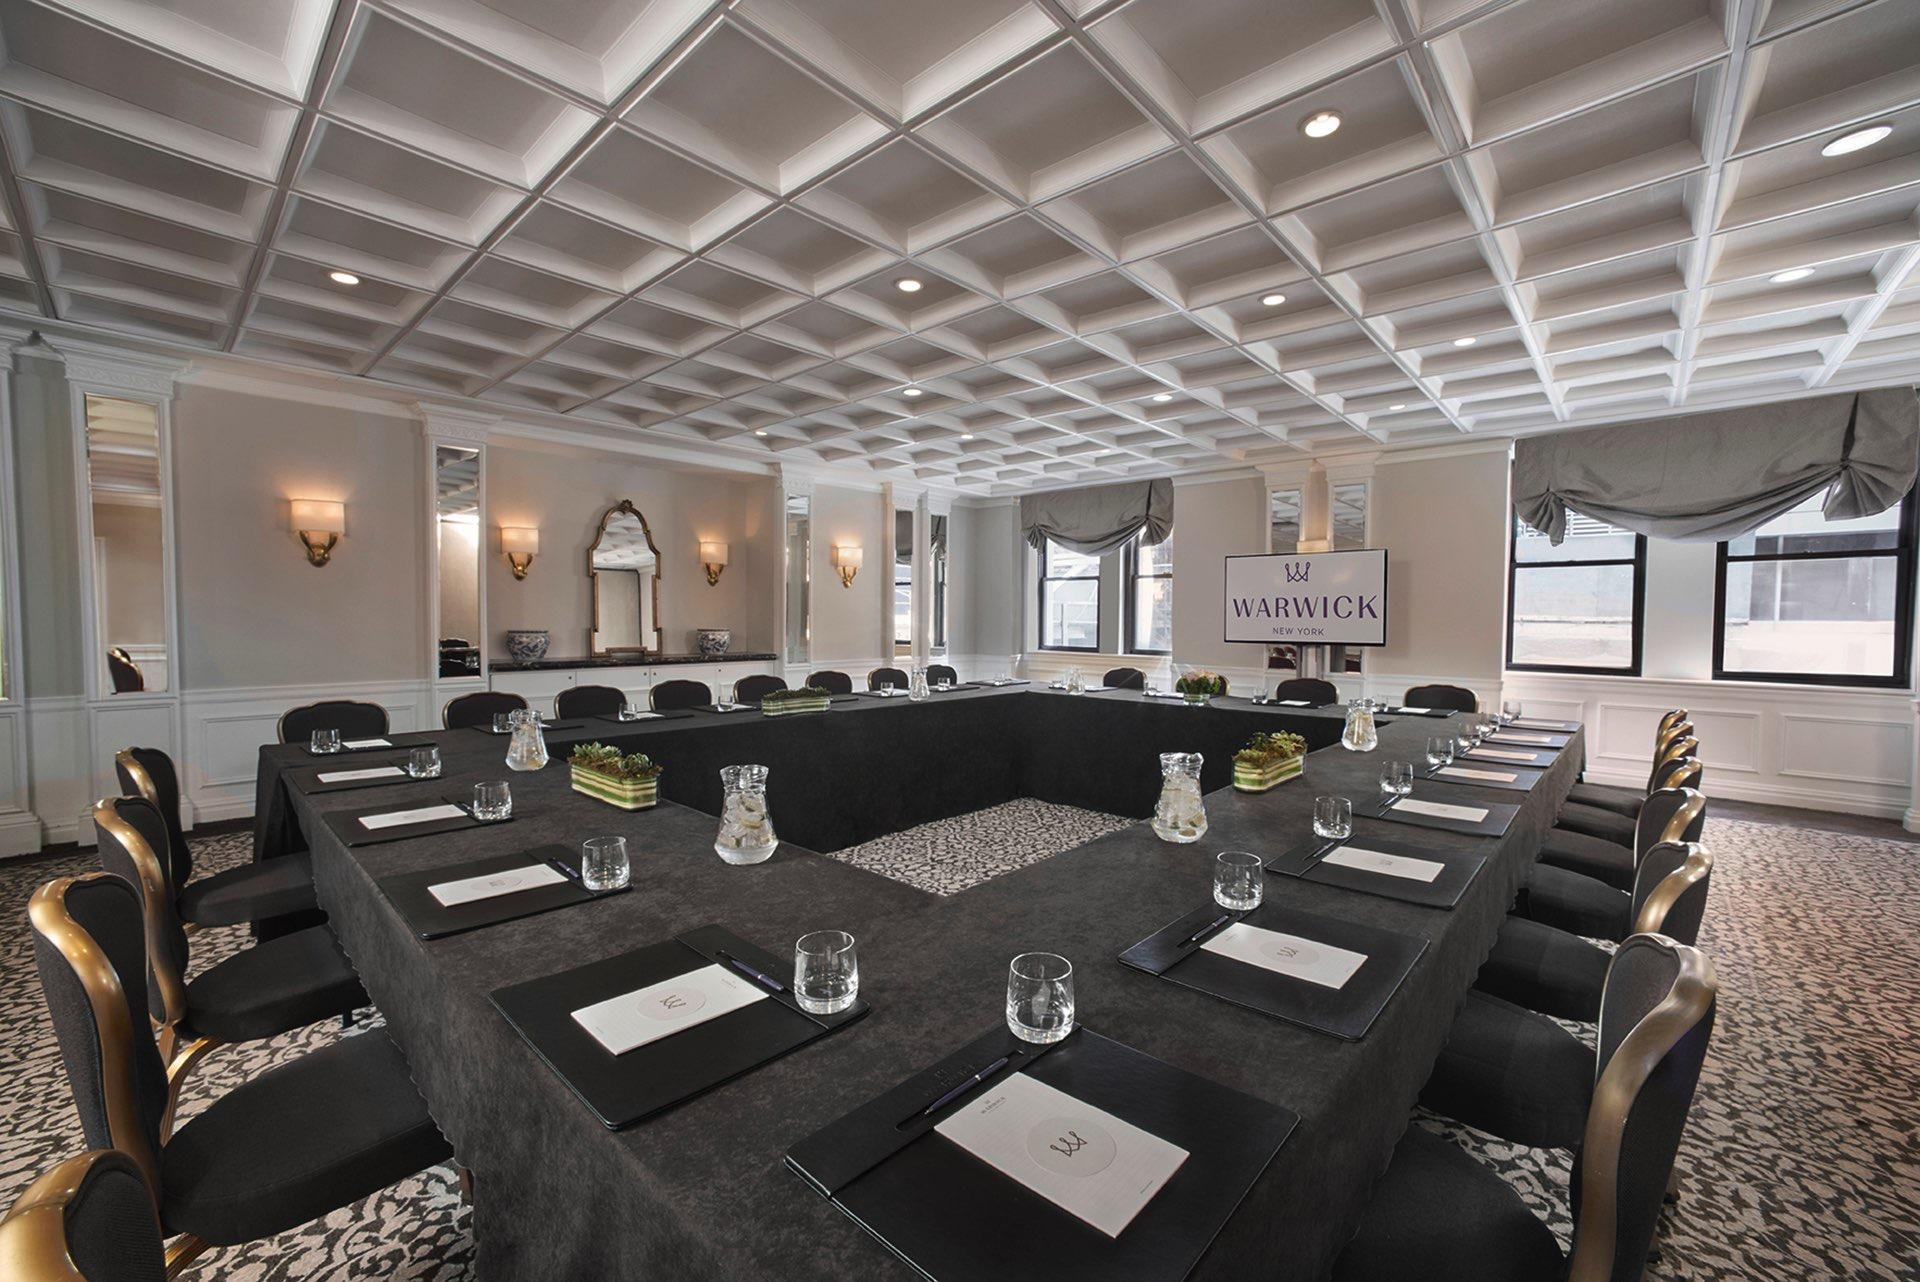 Oxford Meeting Room Boardroom at Warwick New York